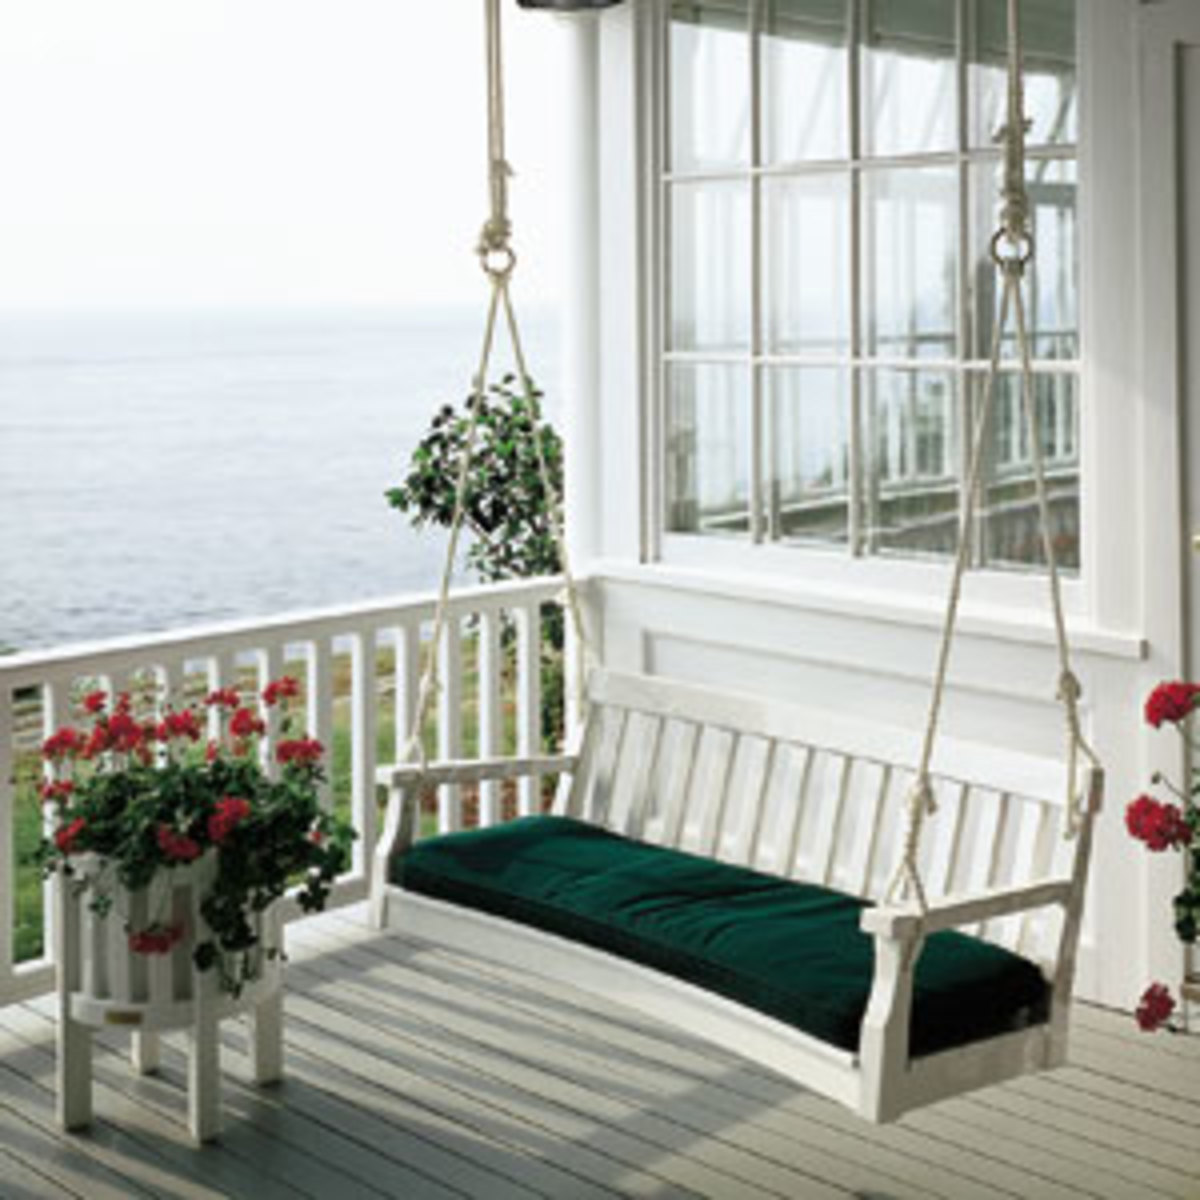 all weather rocking chairs white wicker chair outdoor the fun of cottage style decorating starting with front porch